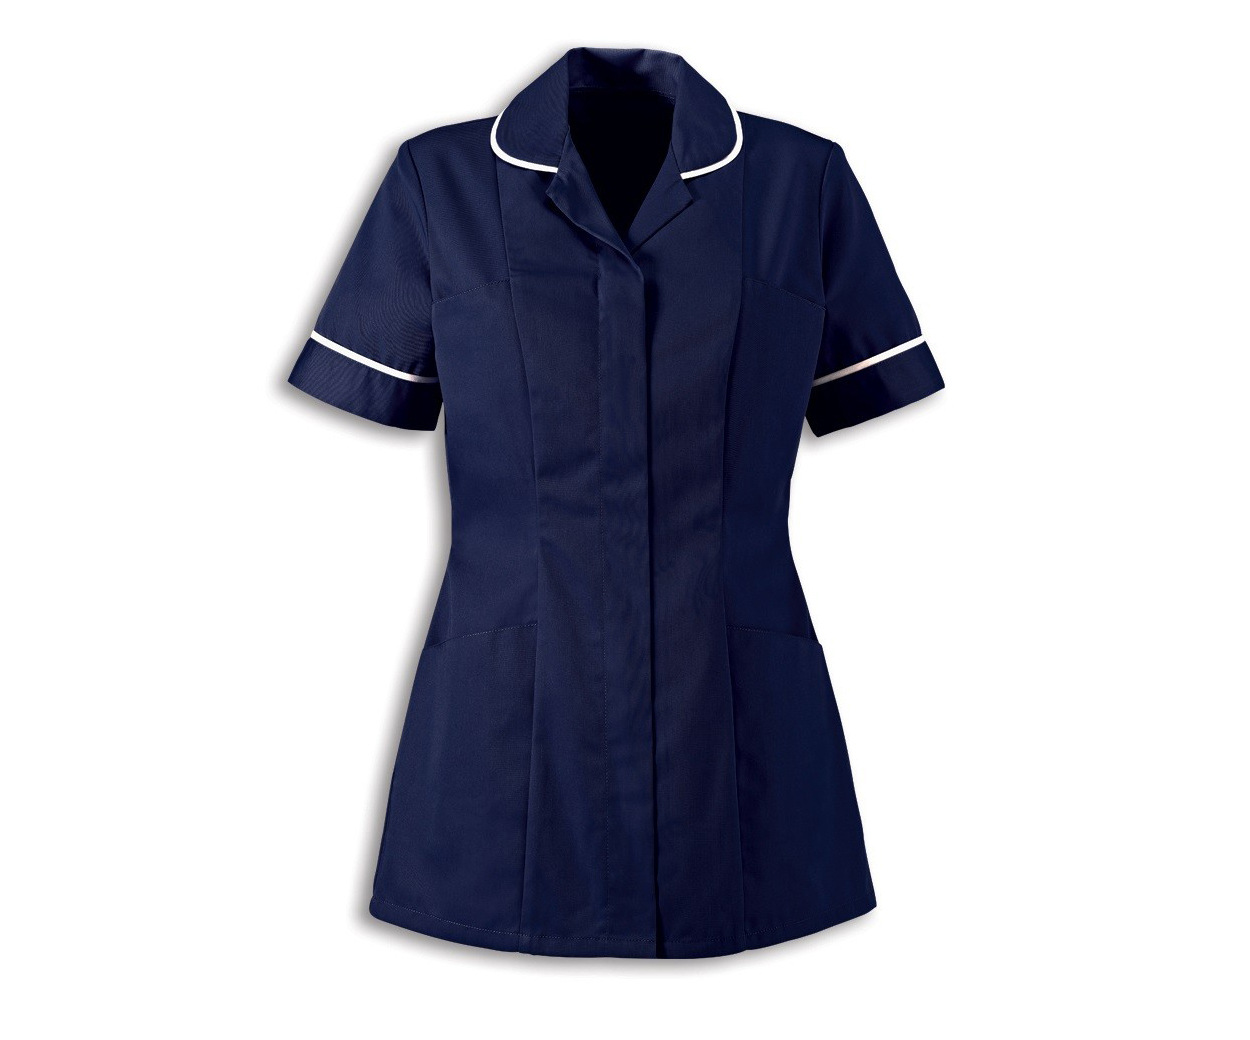 Ladies navy blue healthcare tunic with white contrast piping